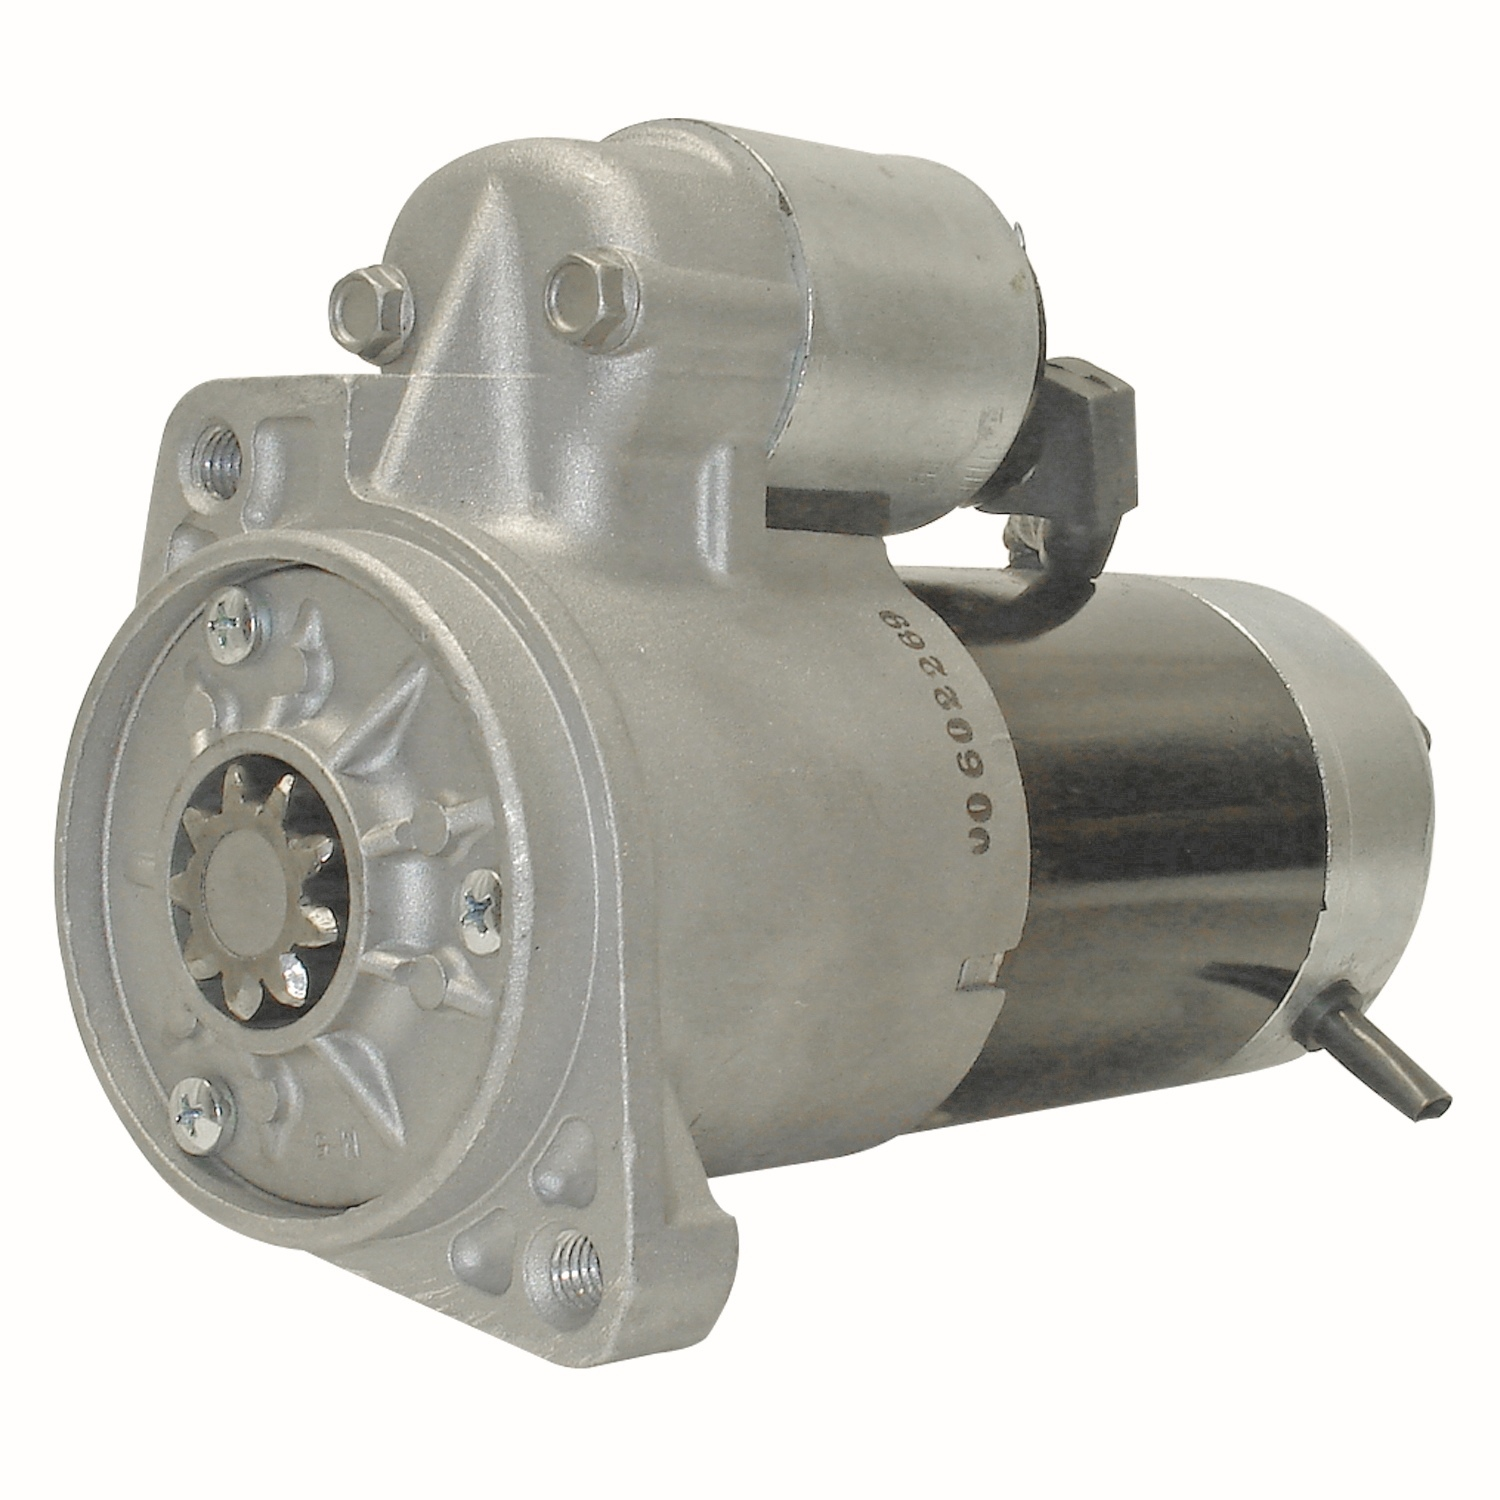 ACDELCO GOLD/PROFESSIONAL - Reman Starter Motor - DCC 336-1535A